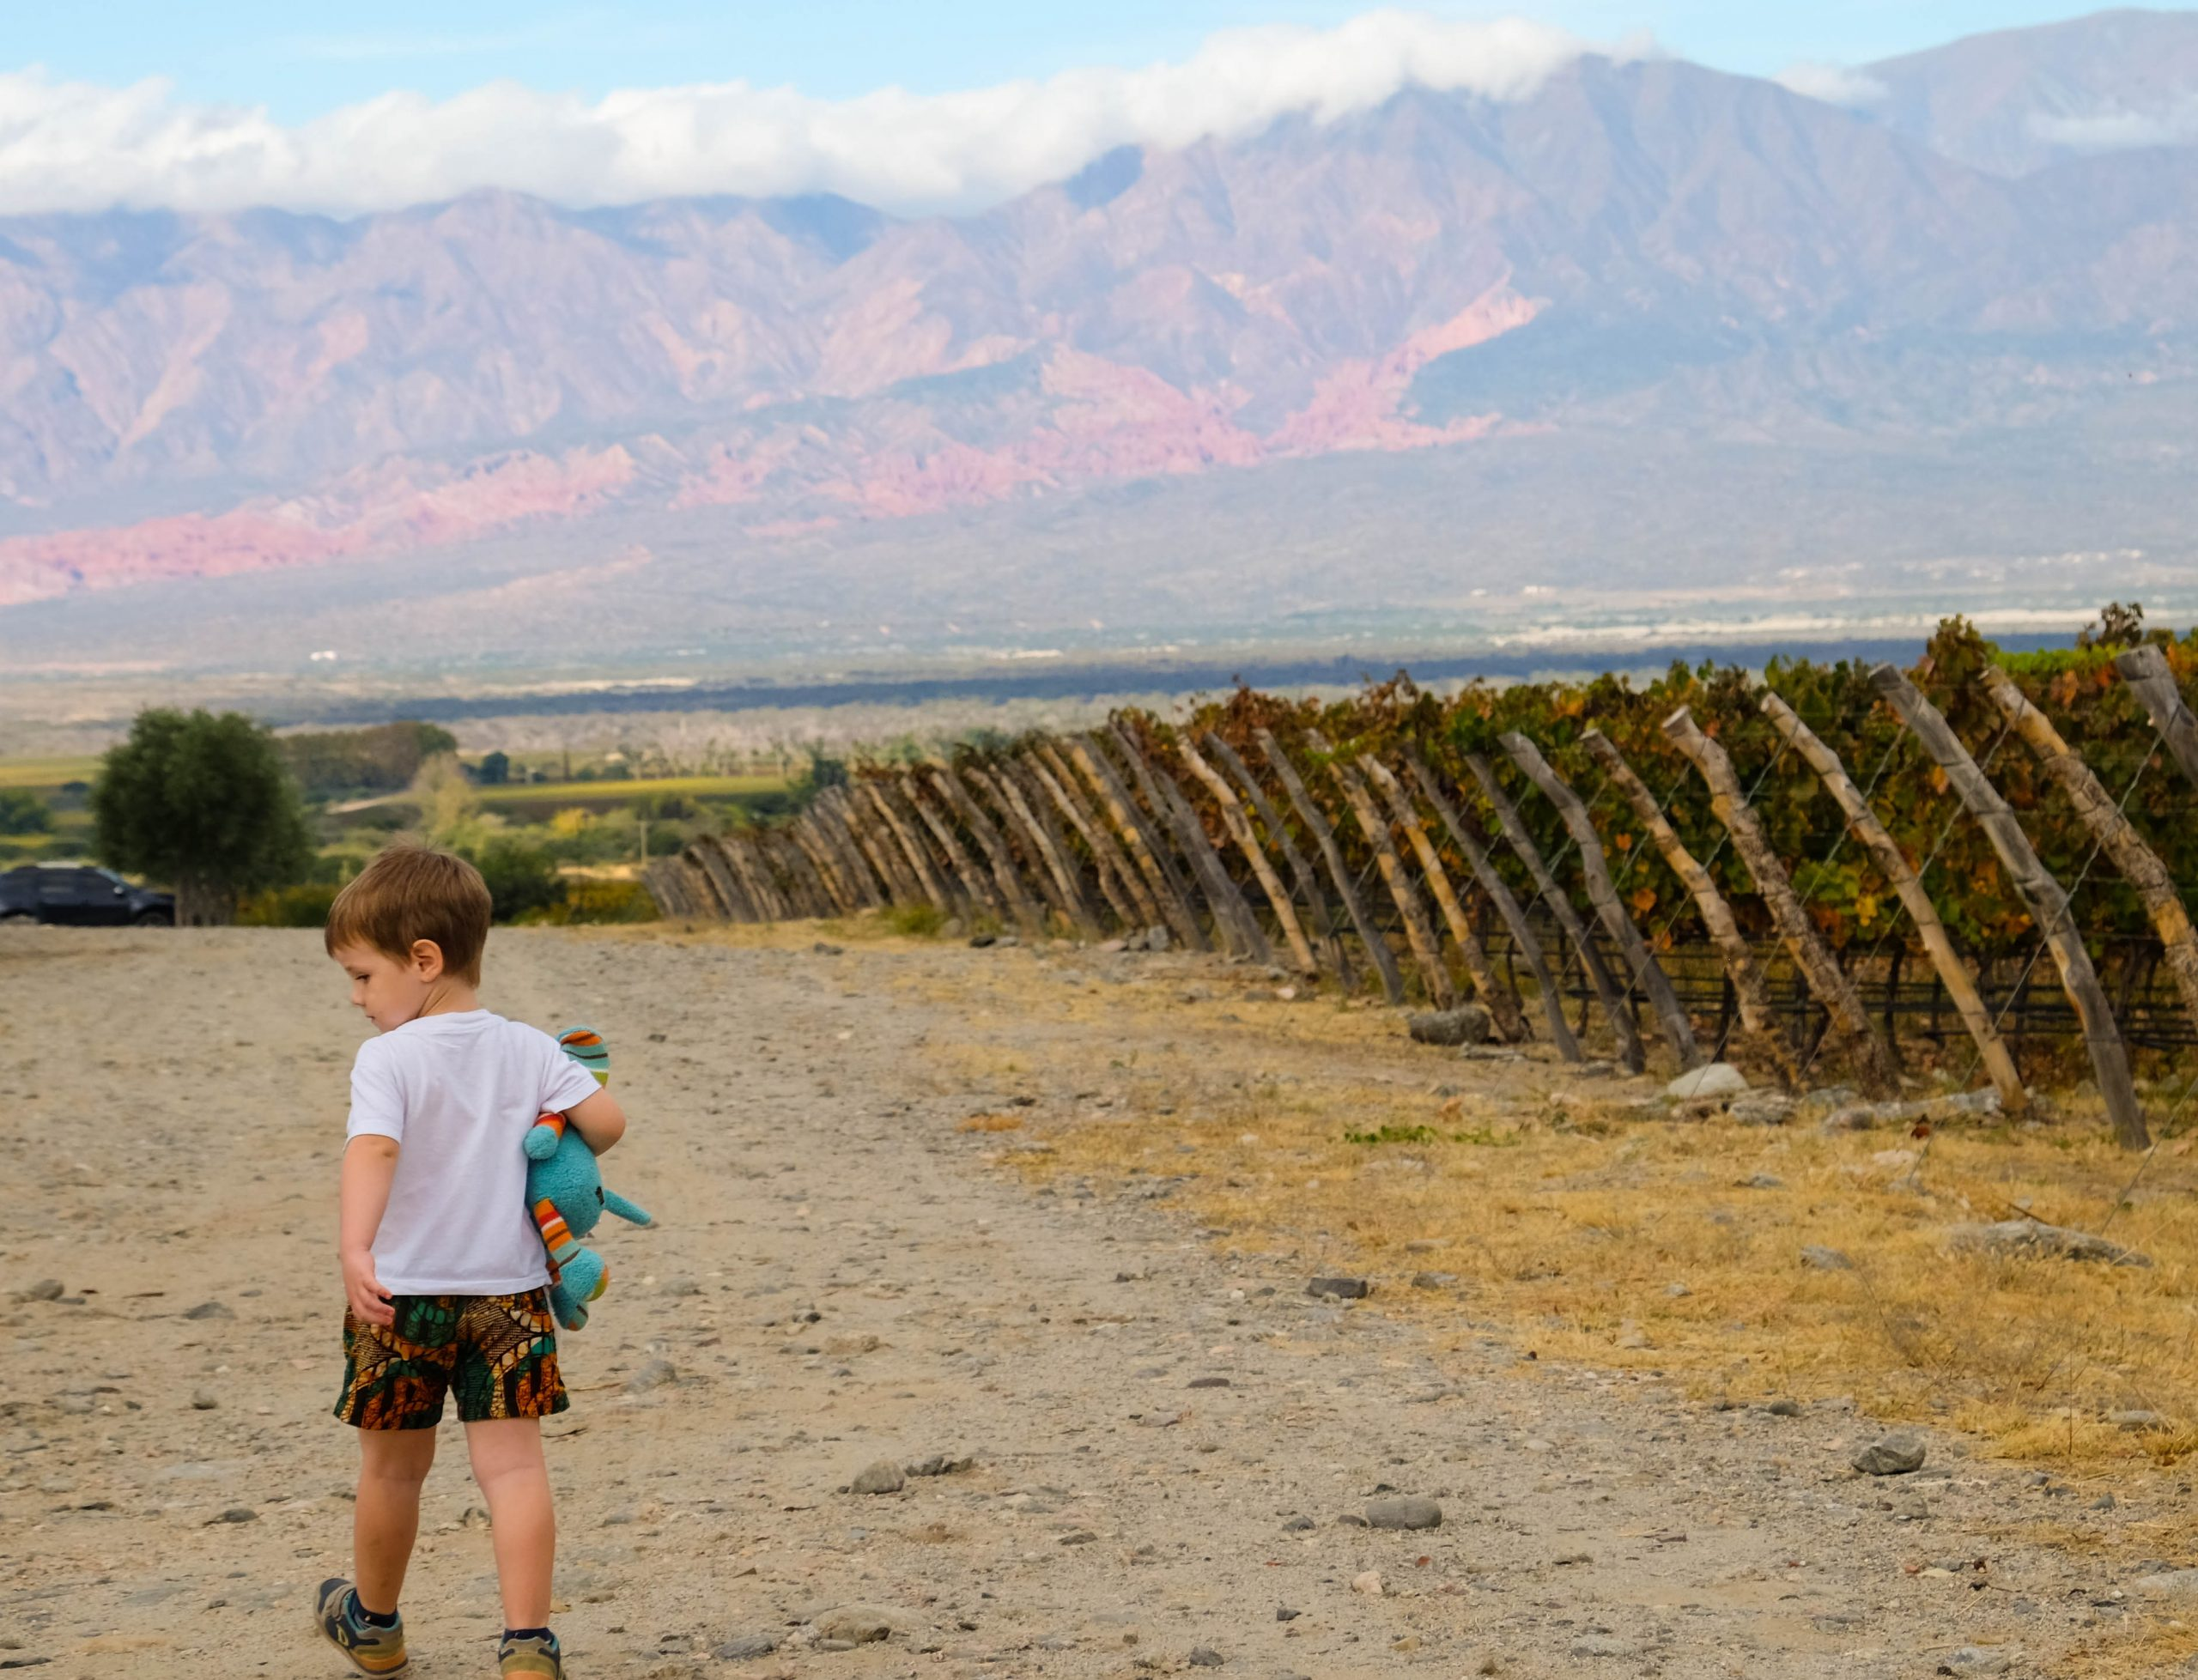 boy with stuffed animal in vineyards